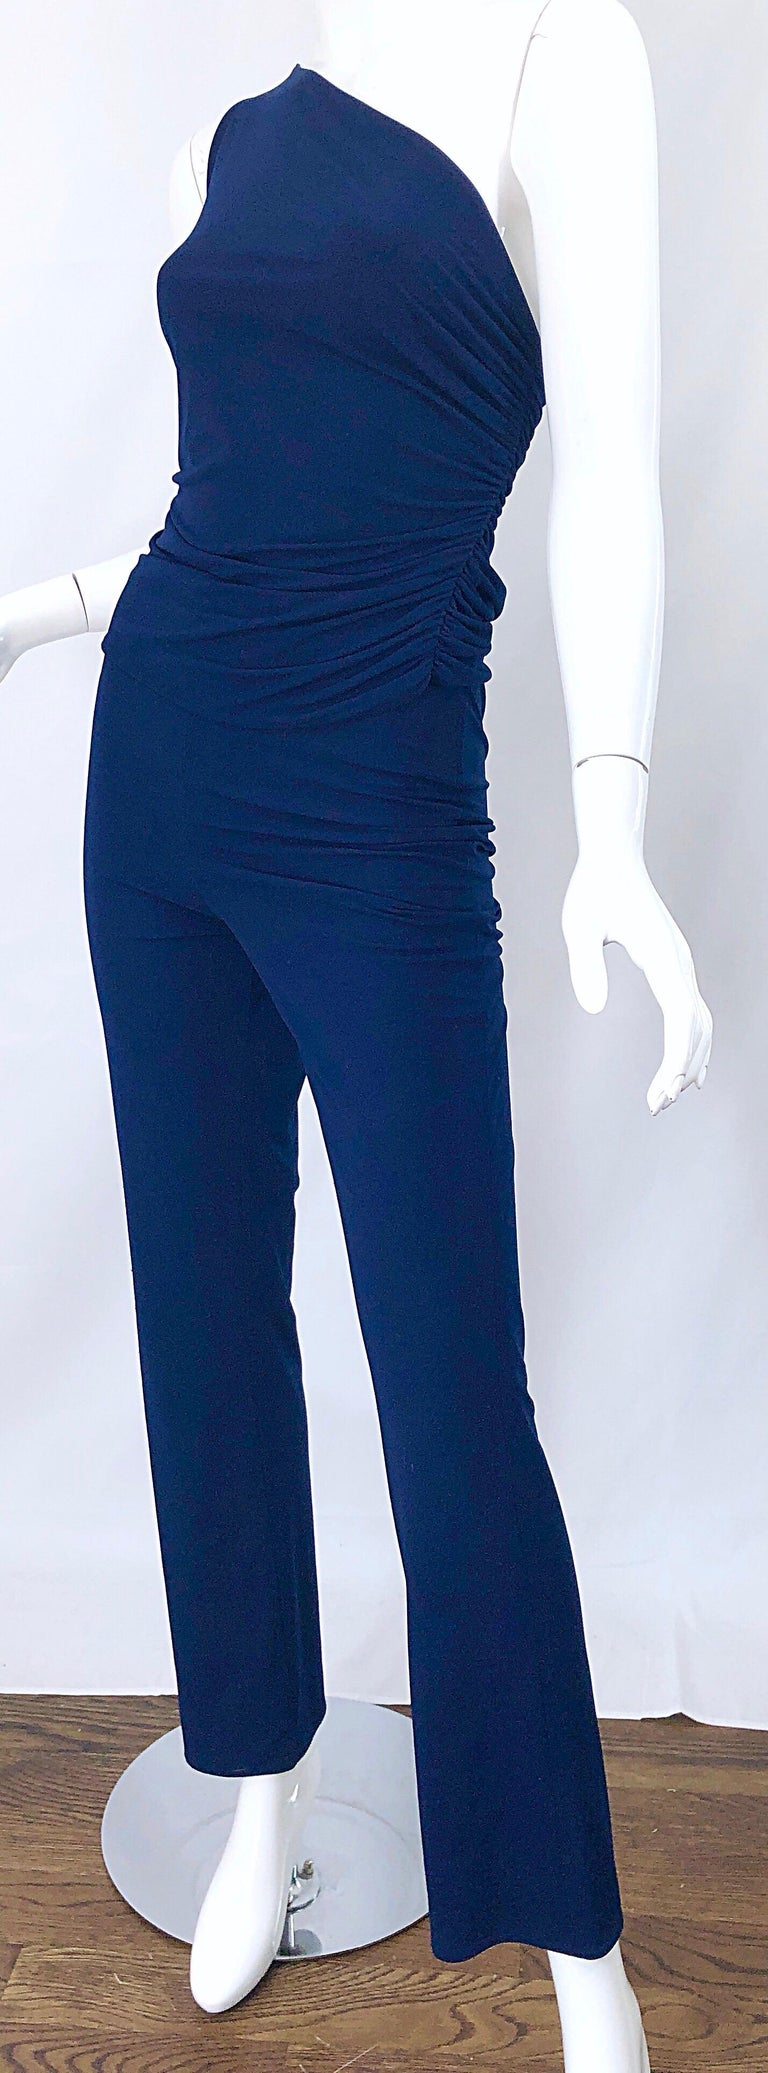 Vintage Norma Kamali OMO 1980s Navy Blue One Shoulder 80s Top and Pants Jumpsuit For Sale 7